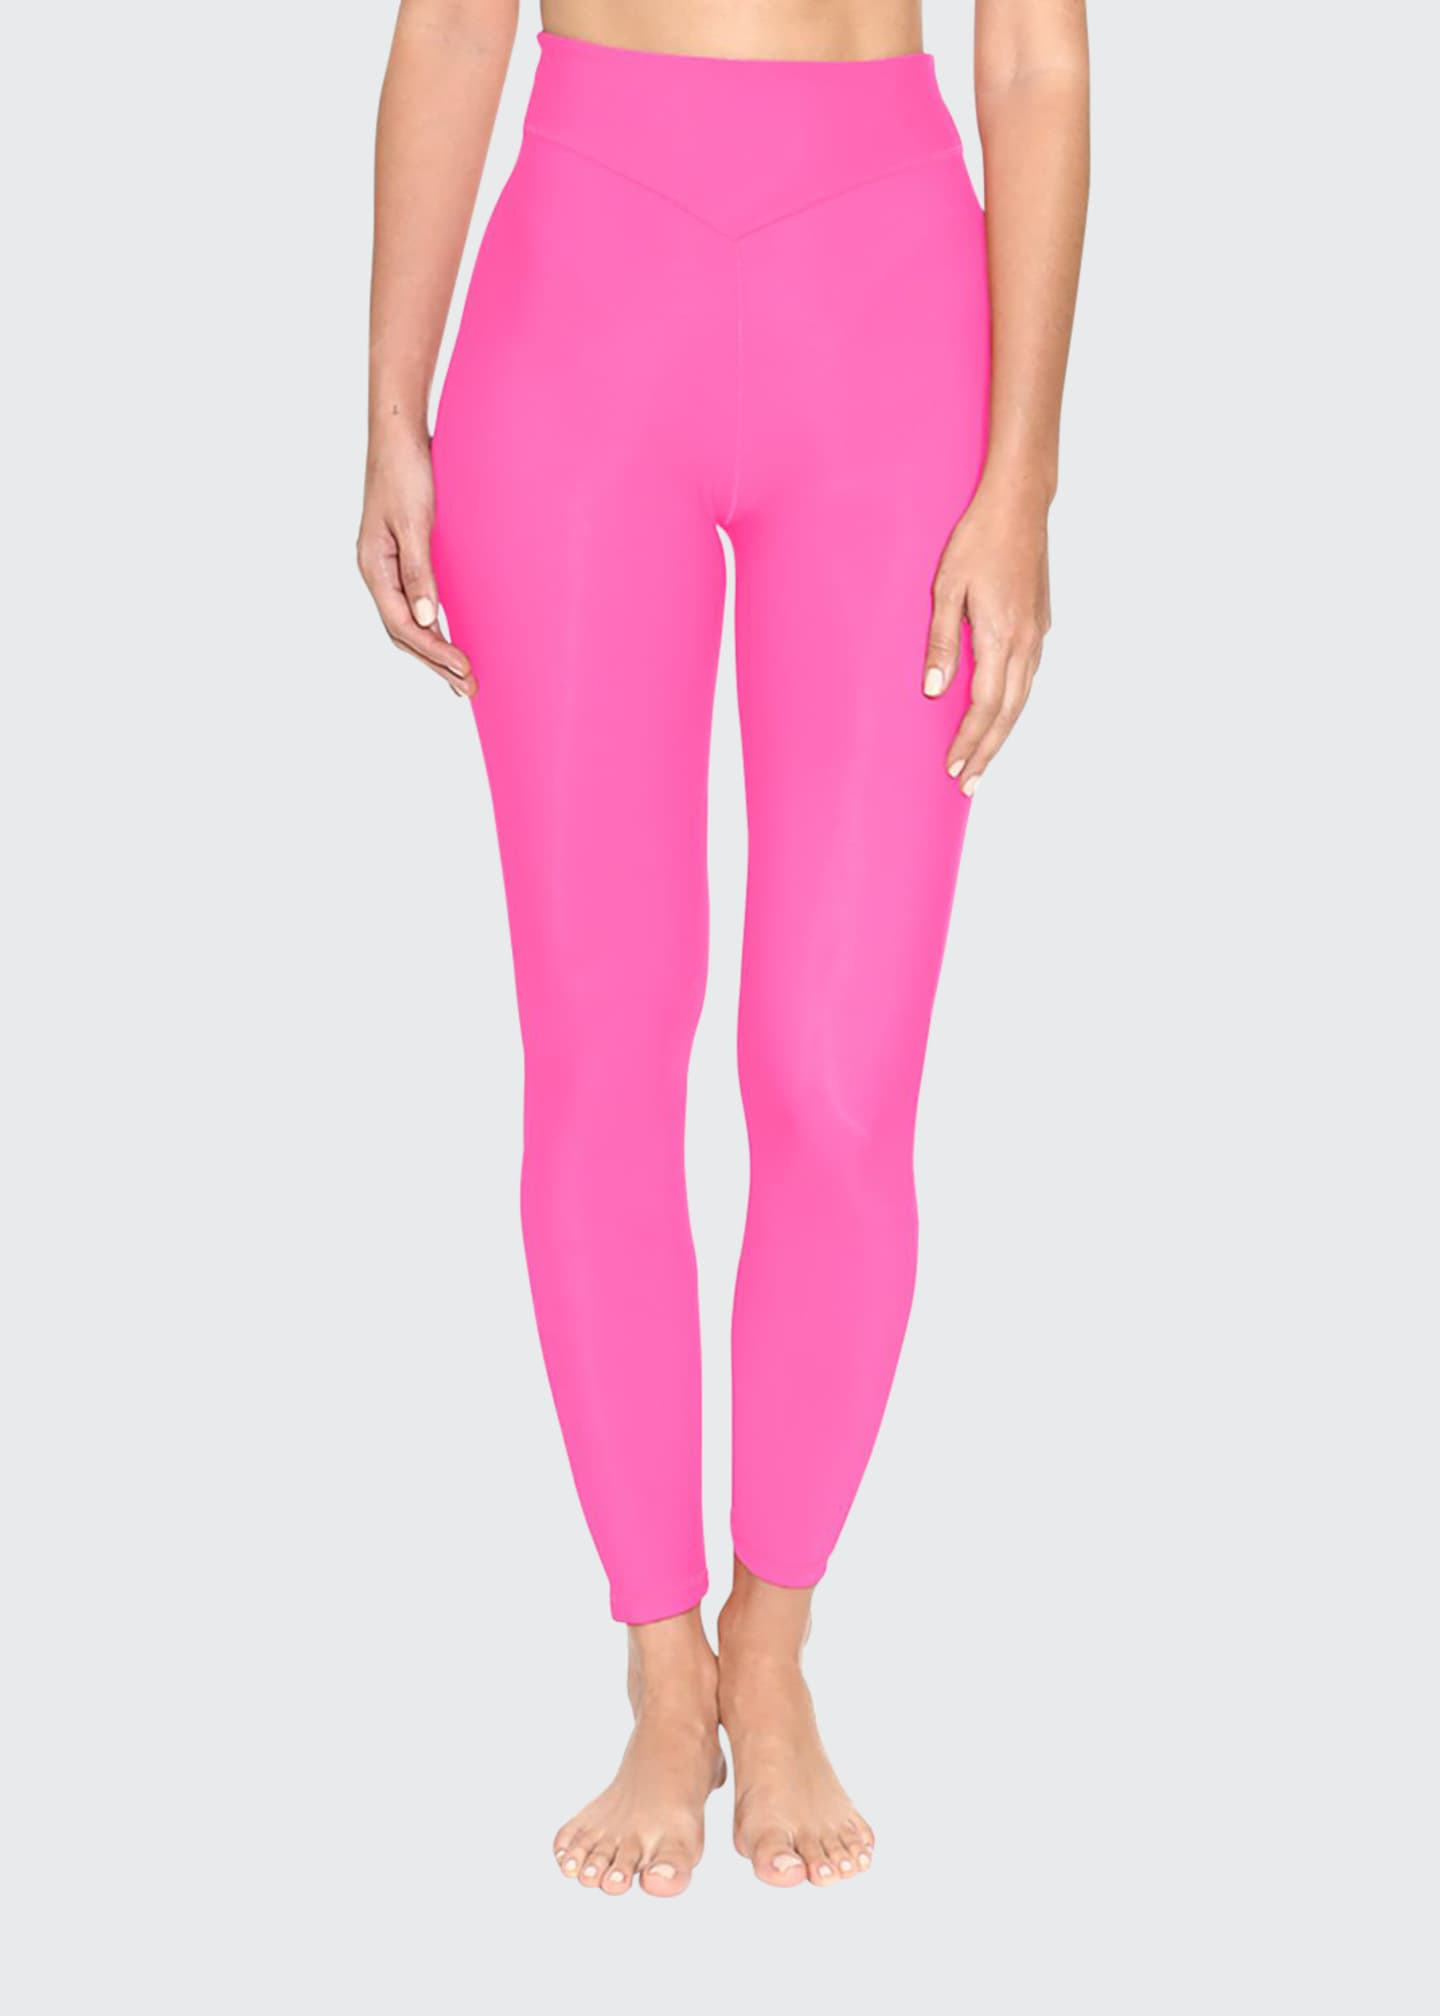 Adam Selman Sport Plunge High-Waist Leggings